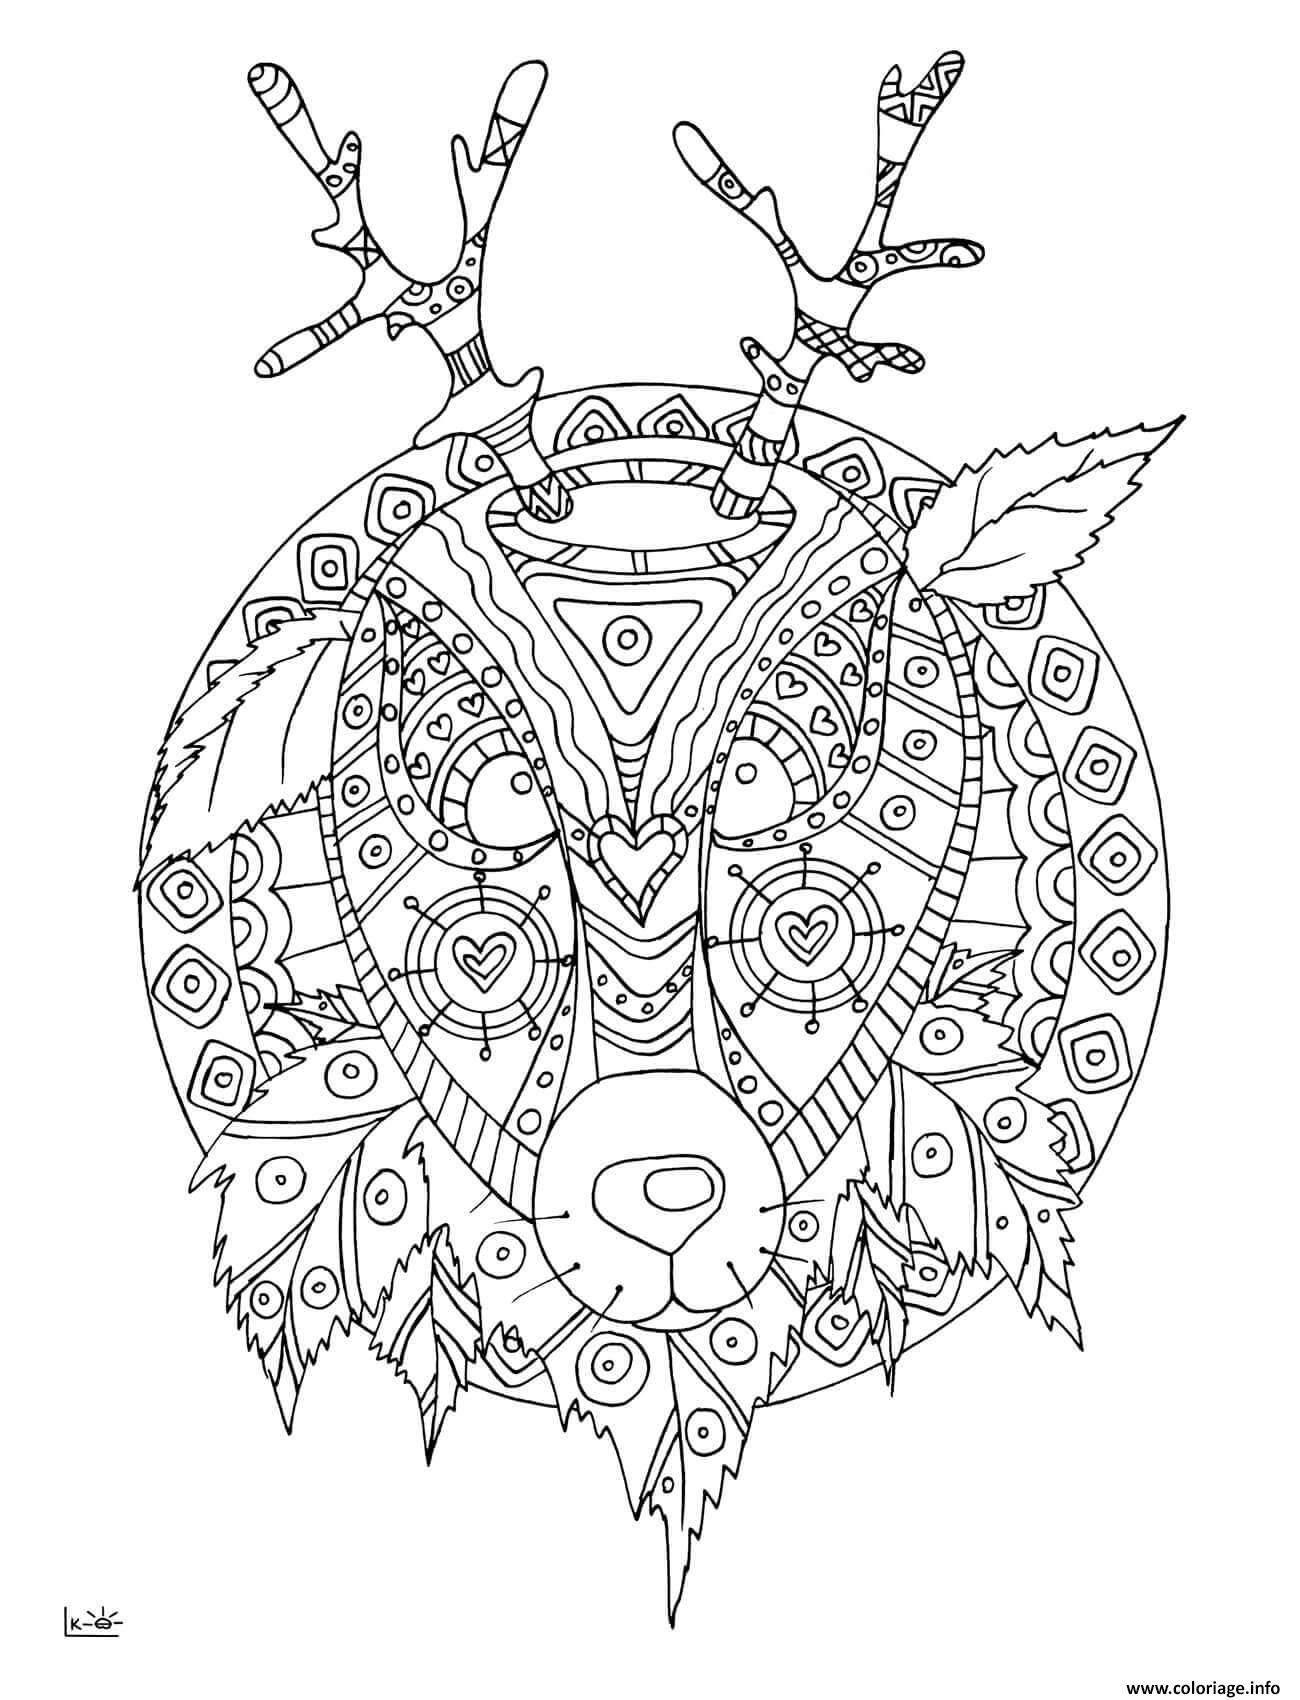 Coloriage Deer With Tribal Pattern Adulte Dessin à Imprimer